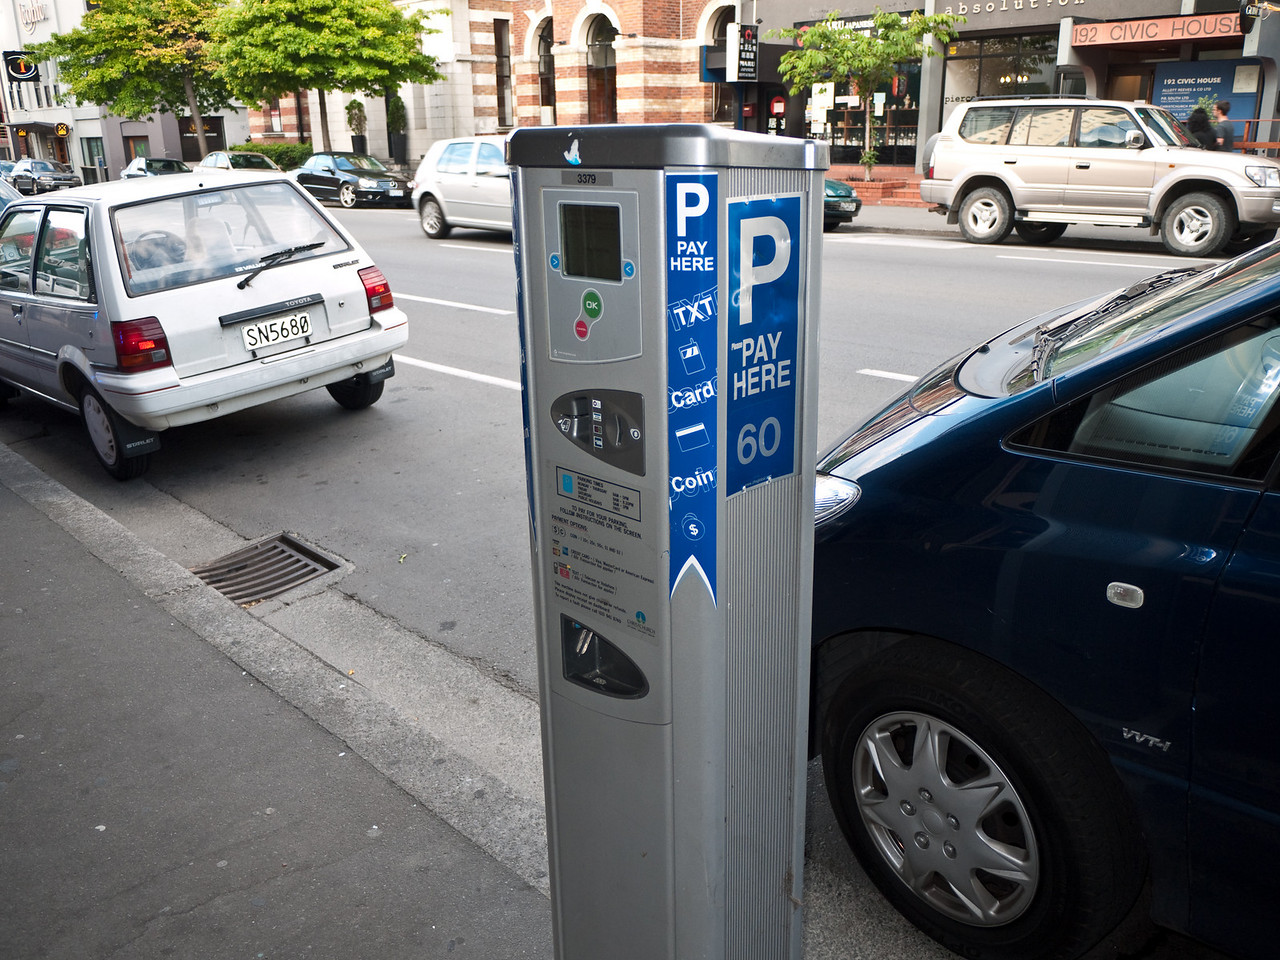 Pay the parking meters by sending a text message